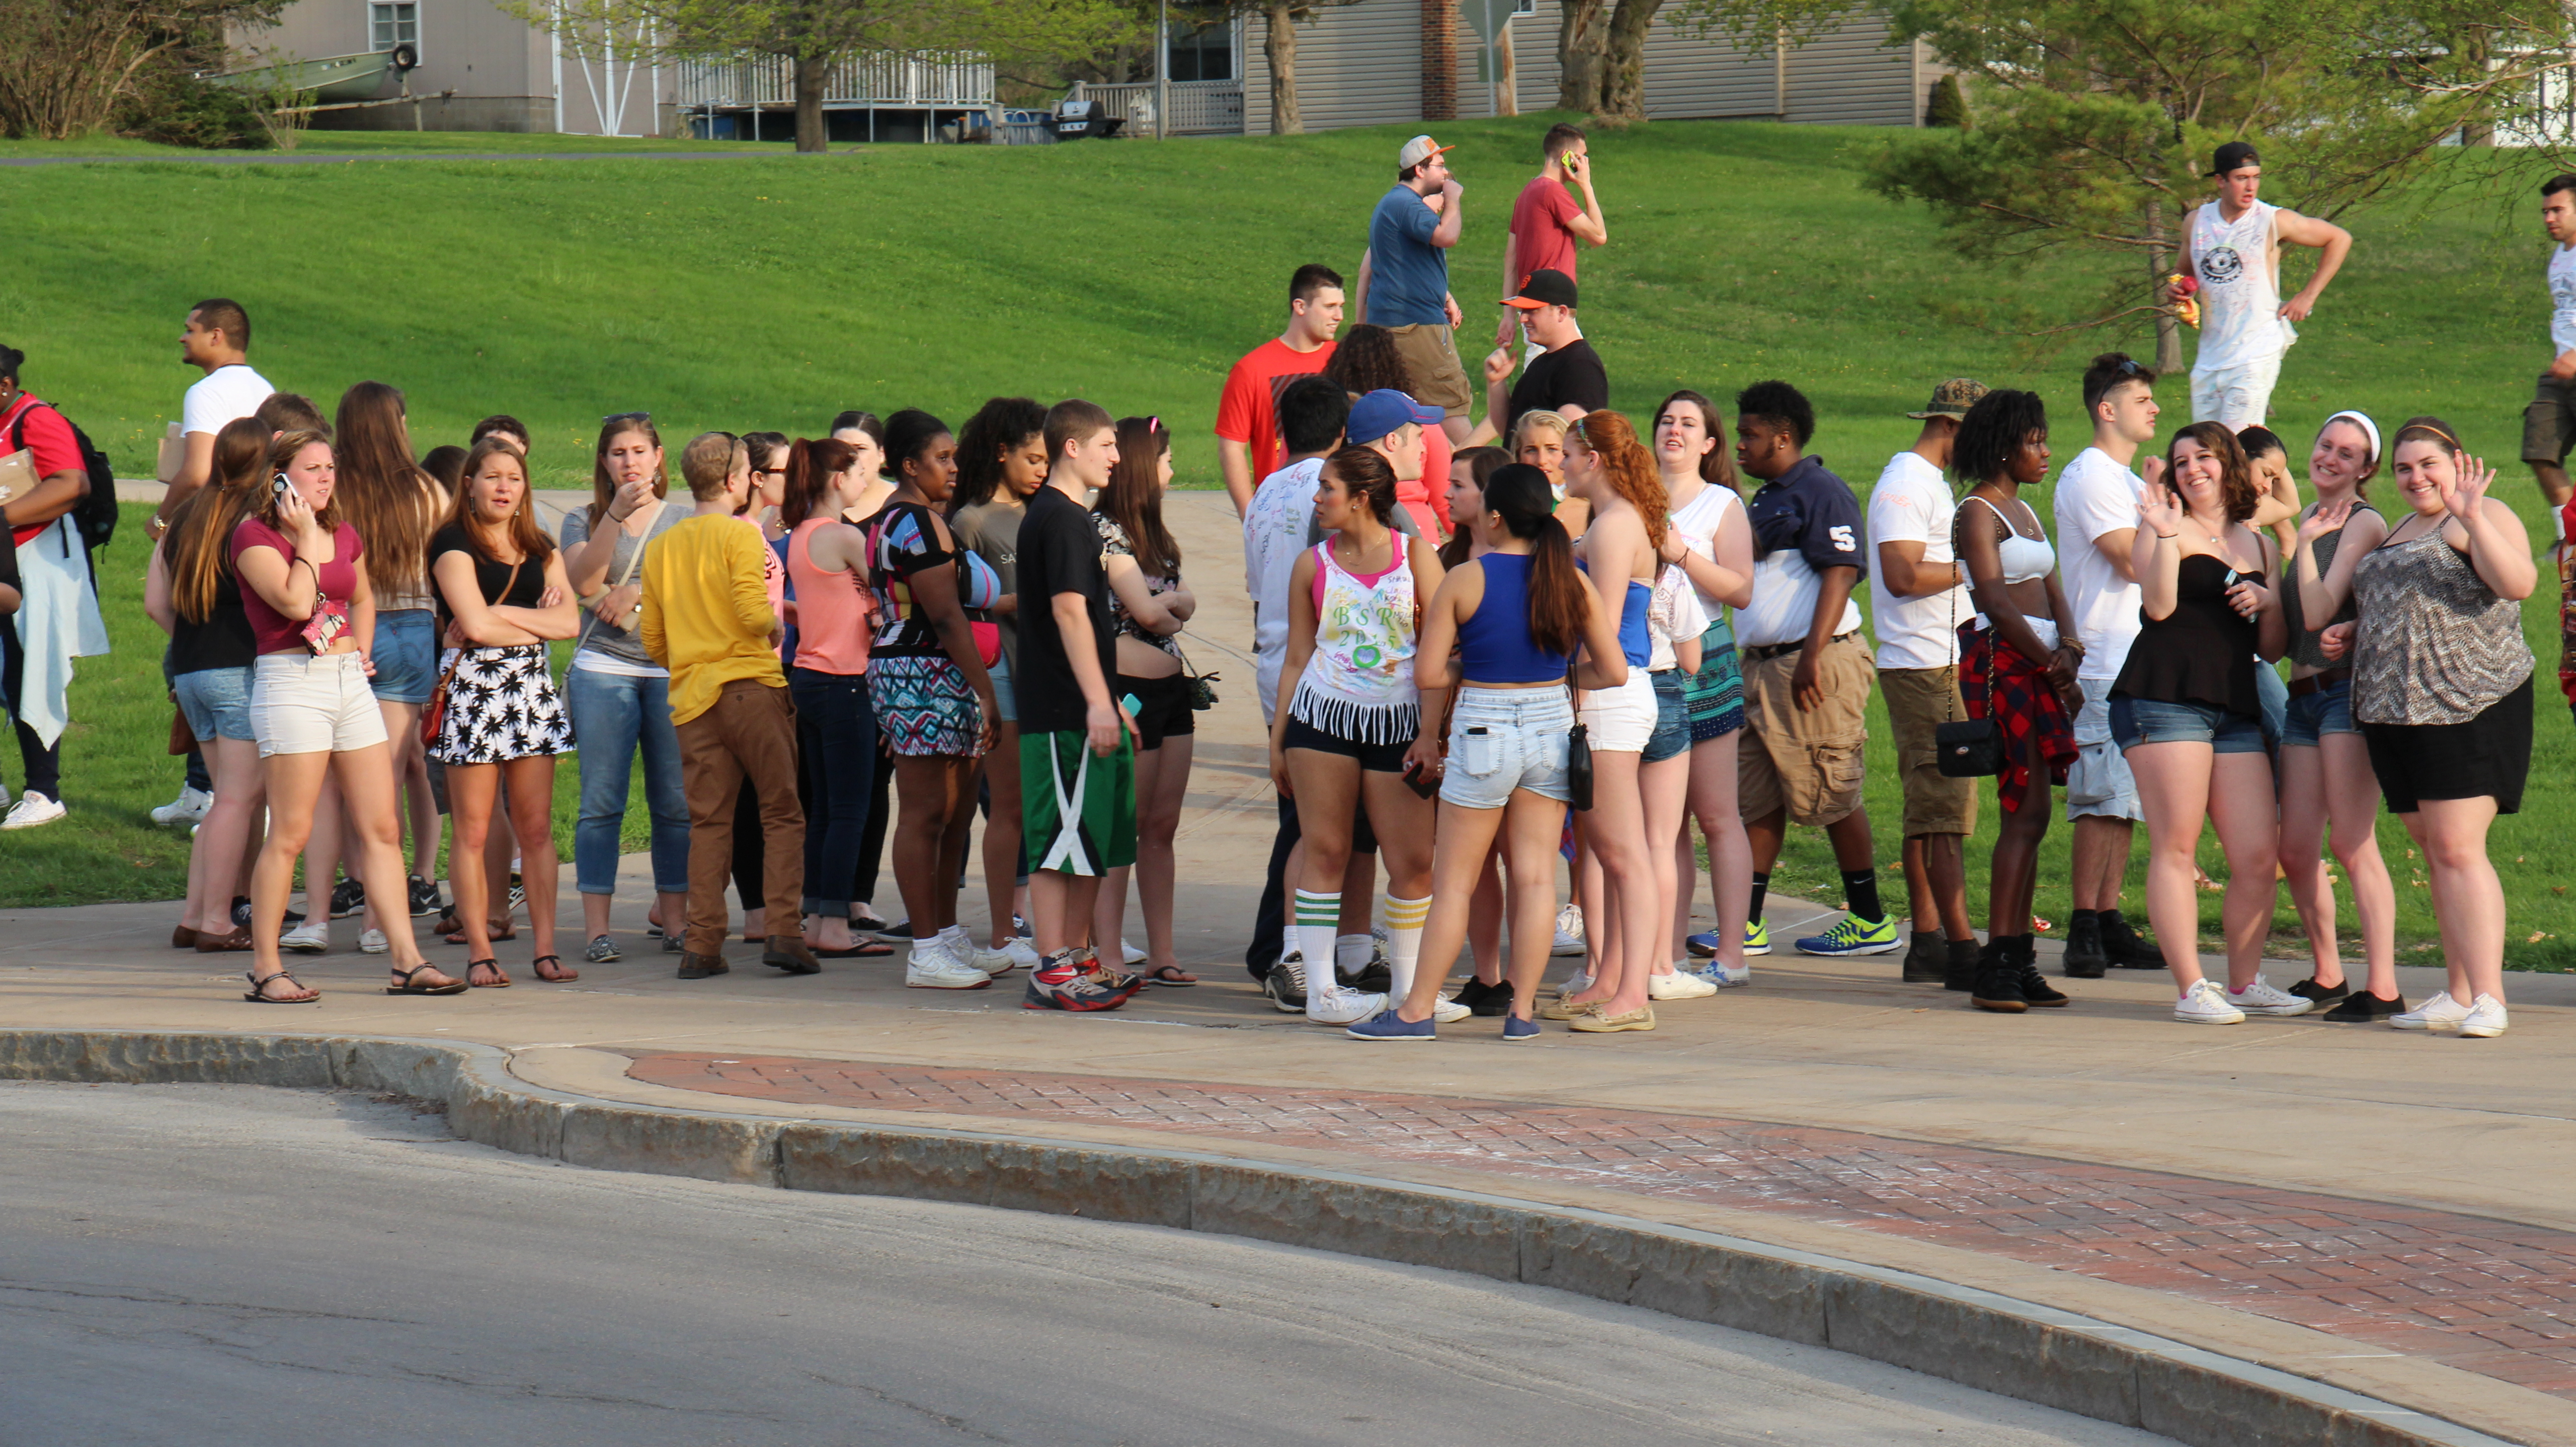 The crowd wrapped around a side entrance of the Marano Campus Center.